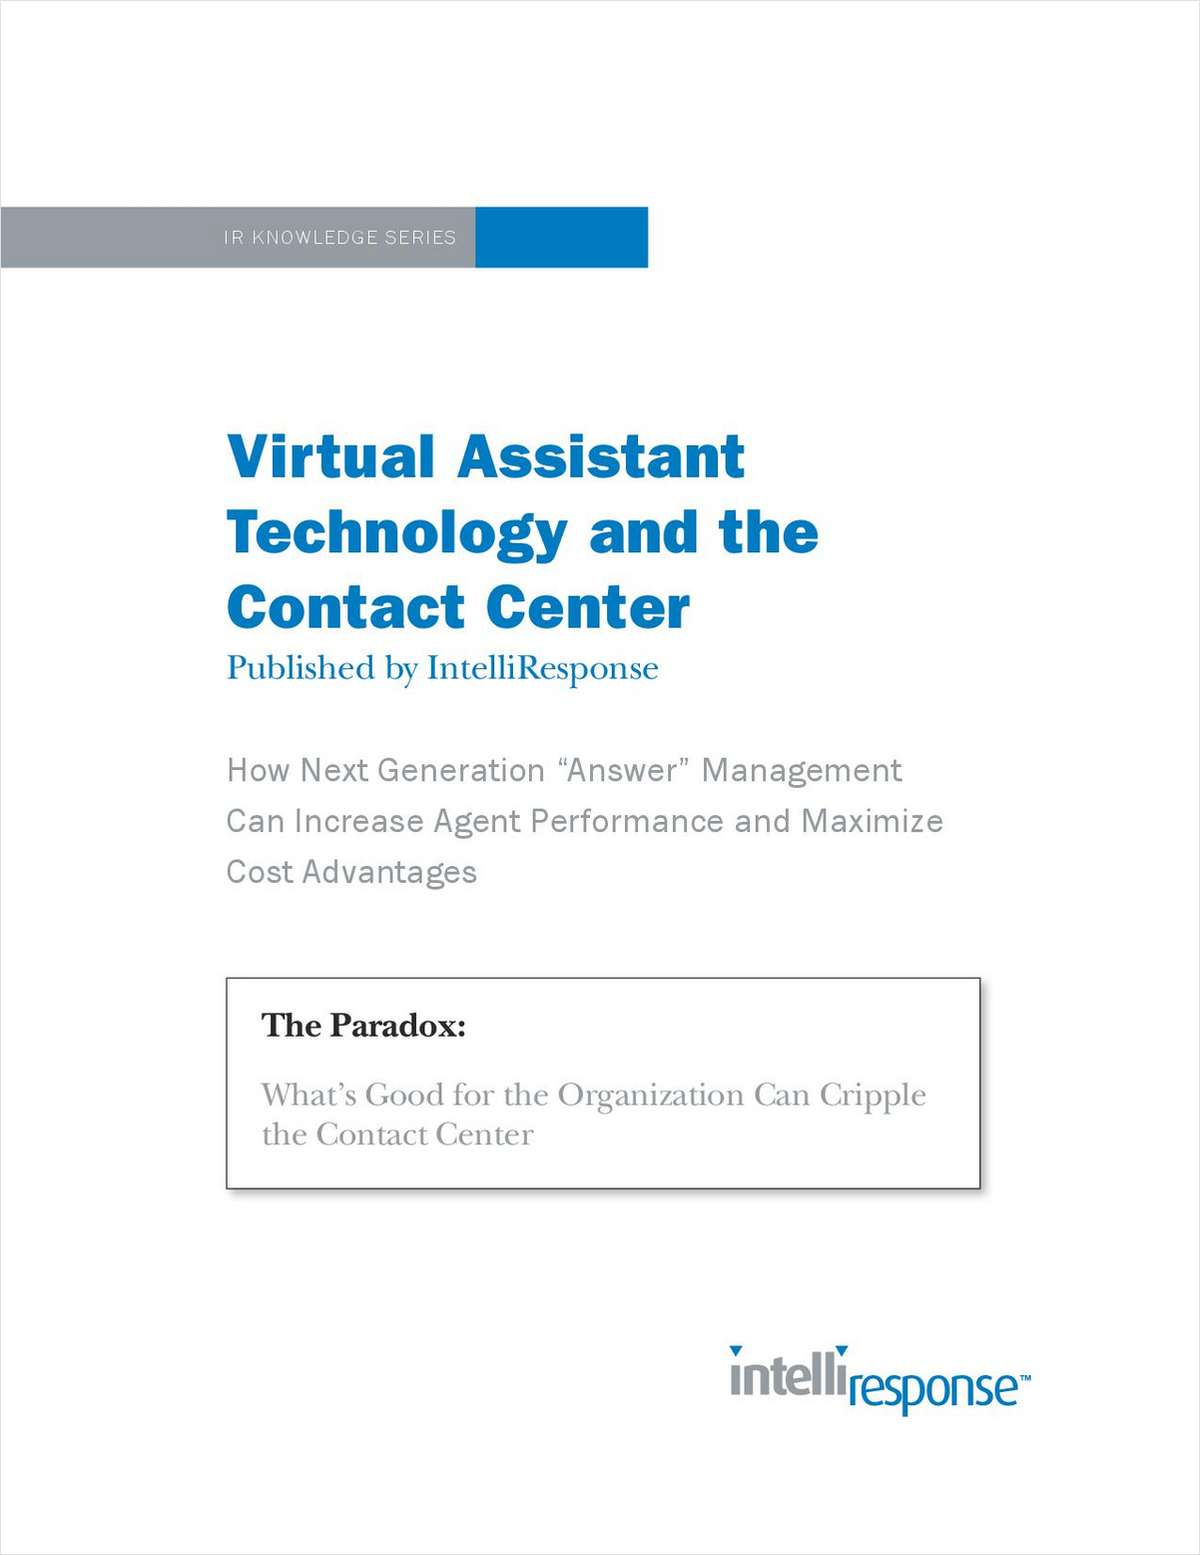 Virtual Assistant Technology and the Contact Center